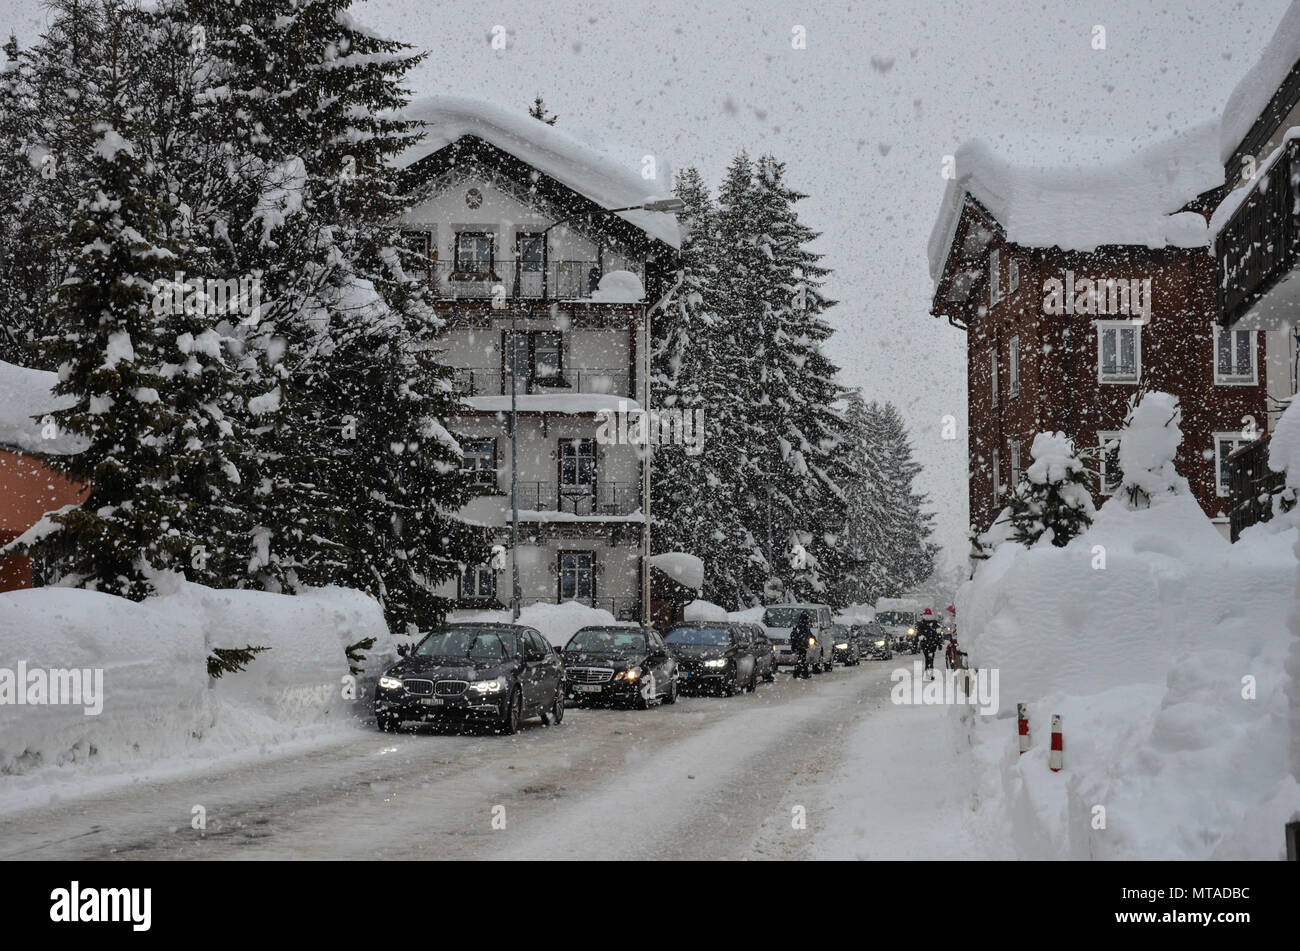 Davos, host town of the World Economic Forum, Switzerland, January 2018 - Stock Image